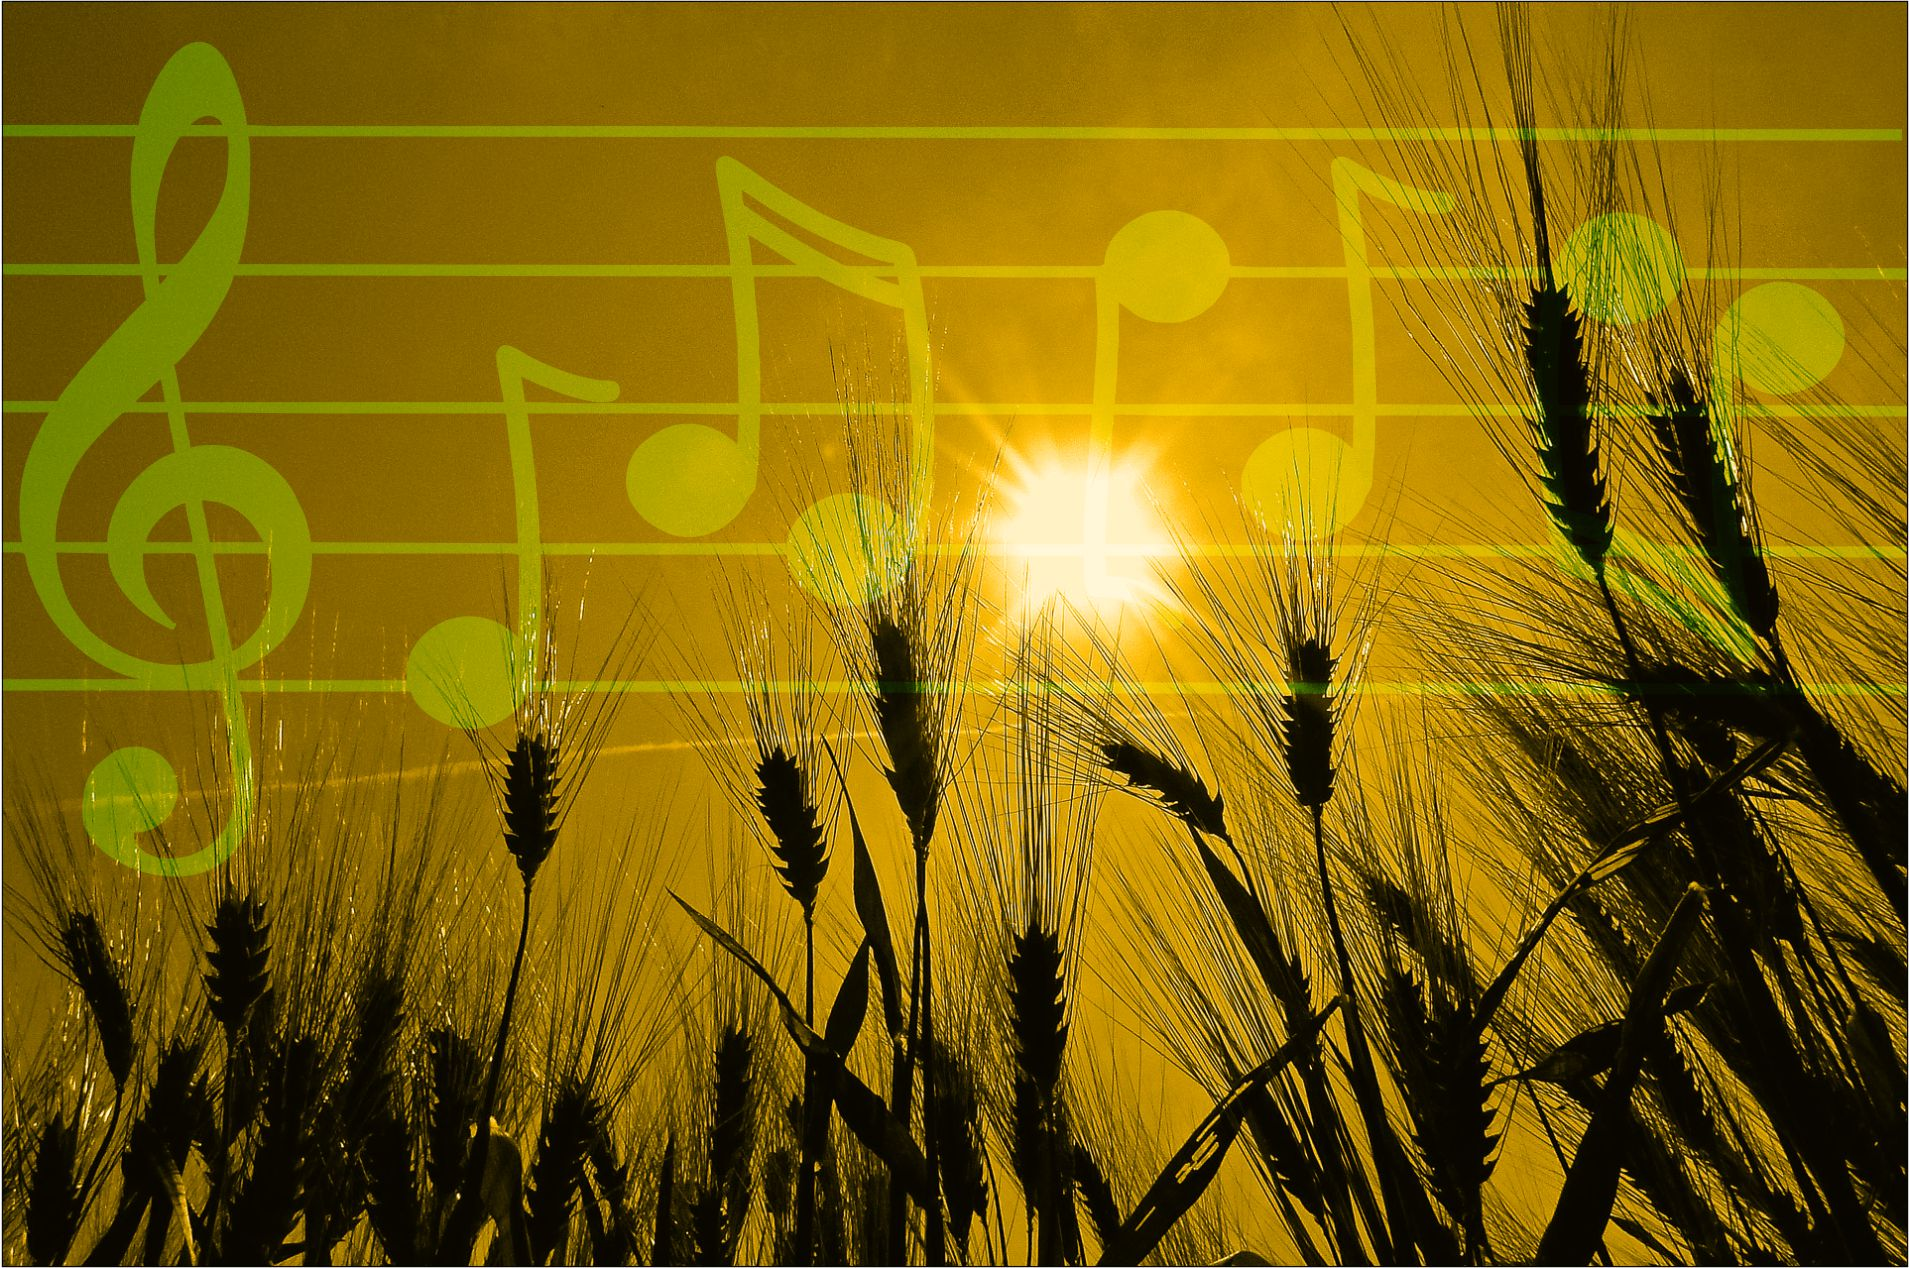 post feature image of wheat in the sun with overlay of musical notes